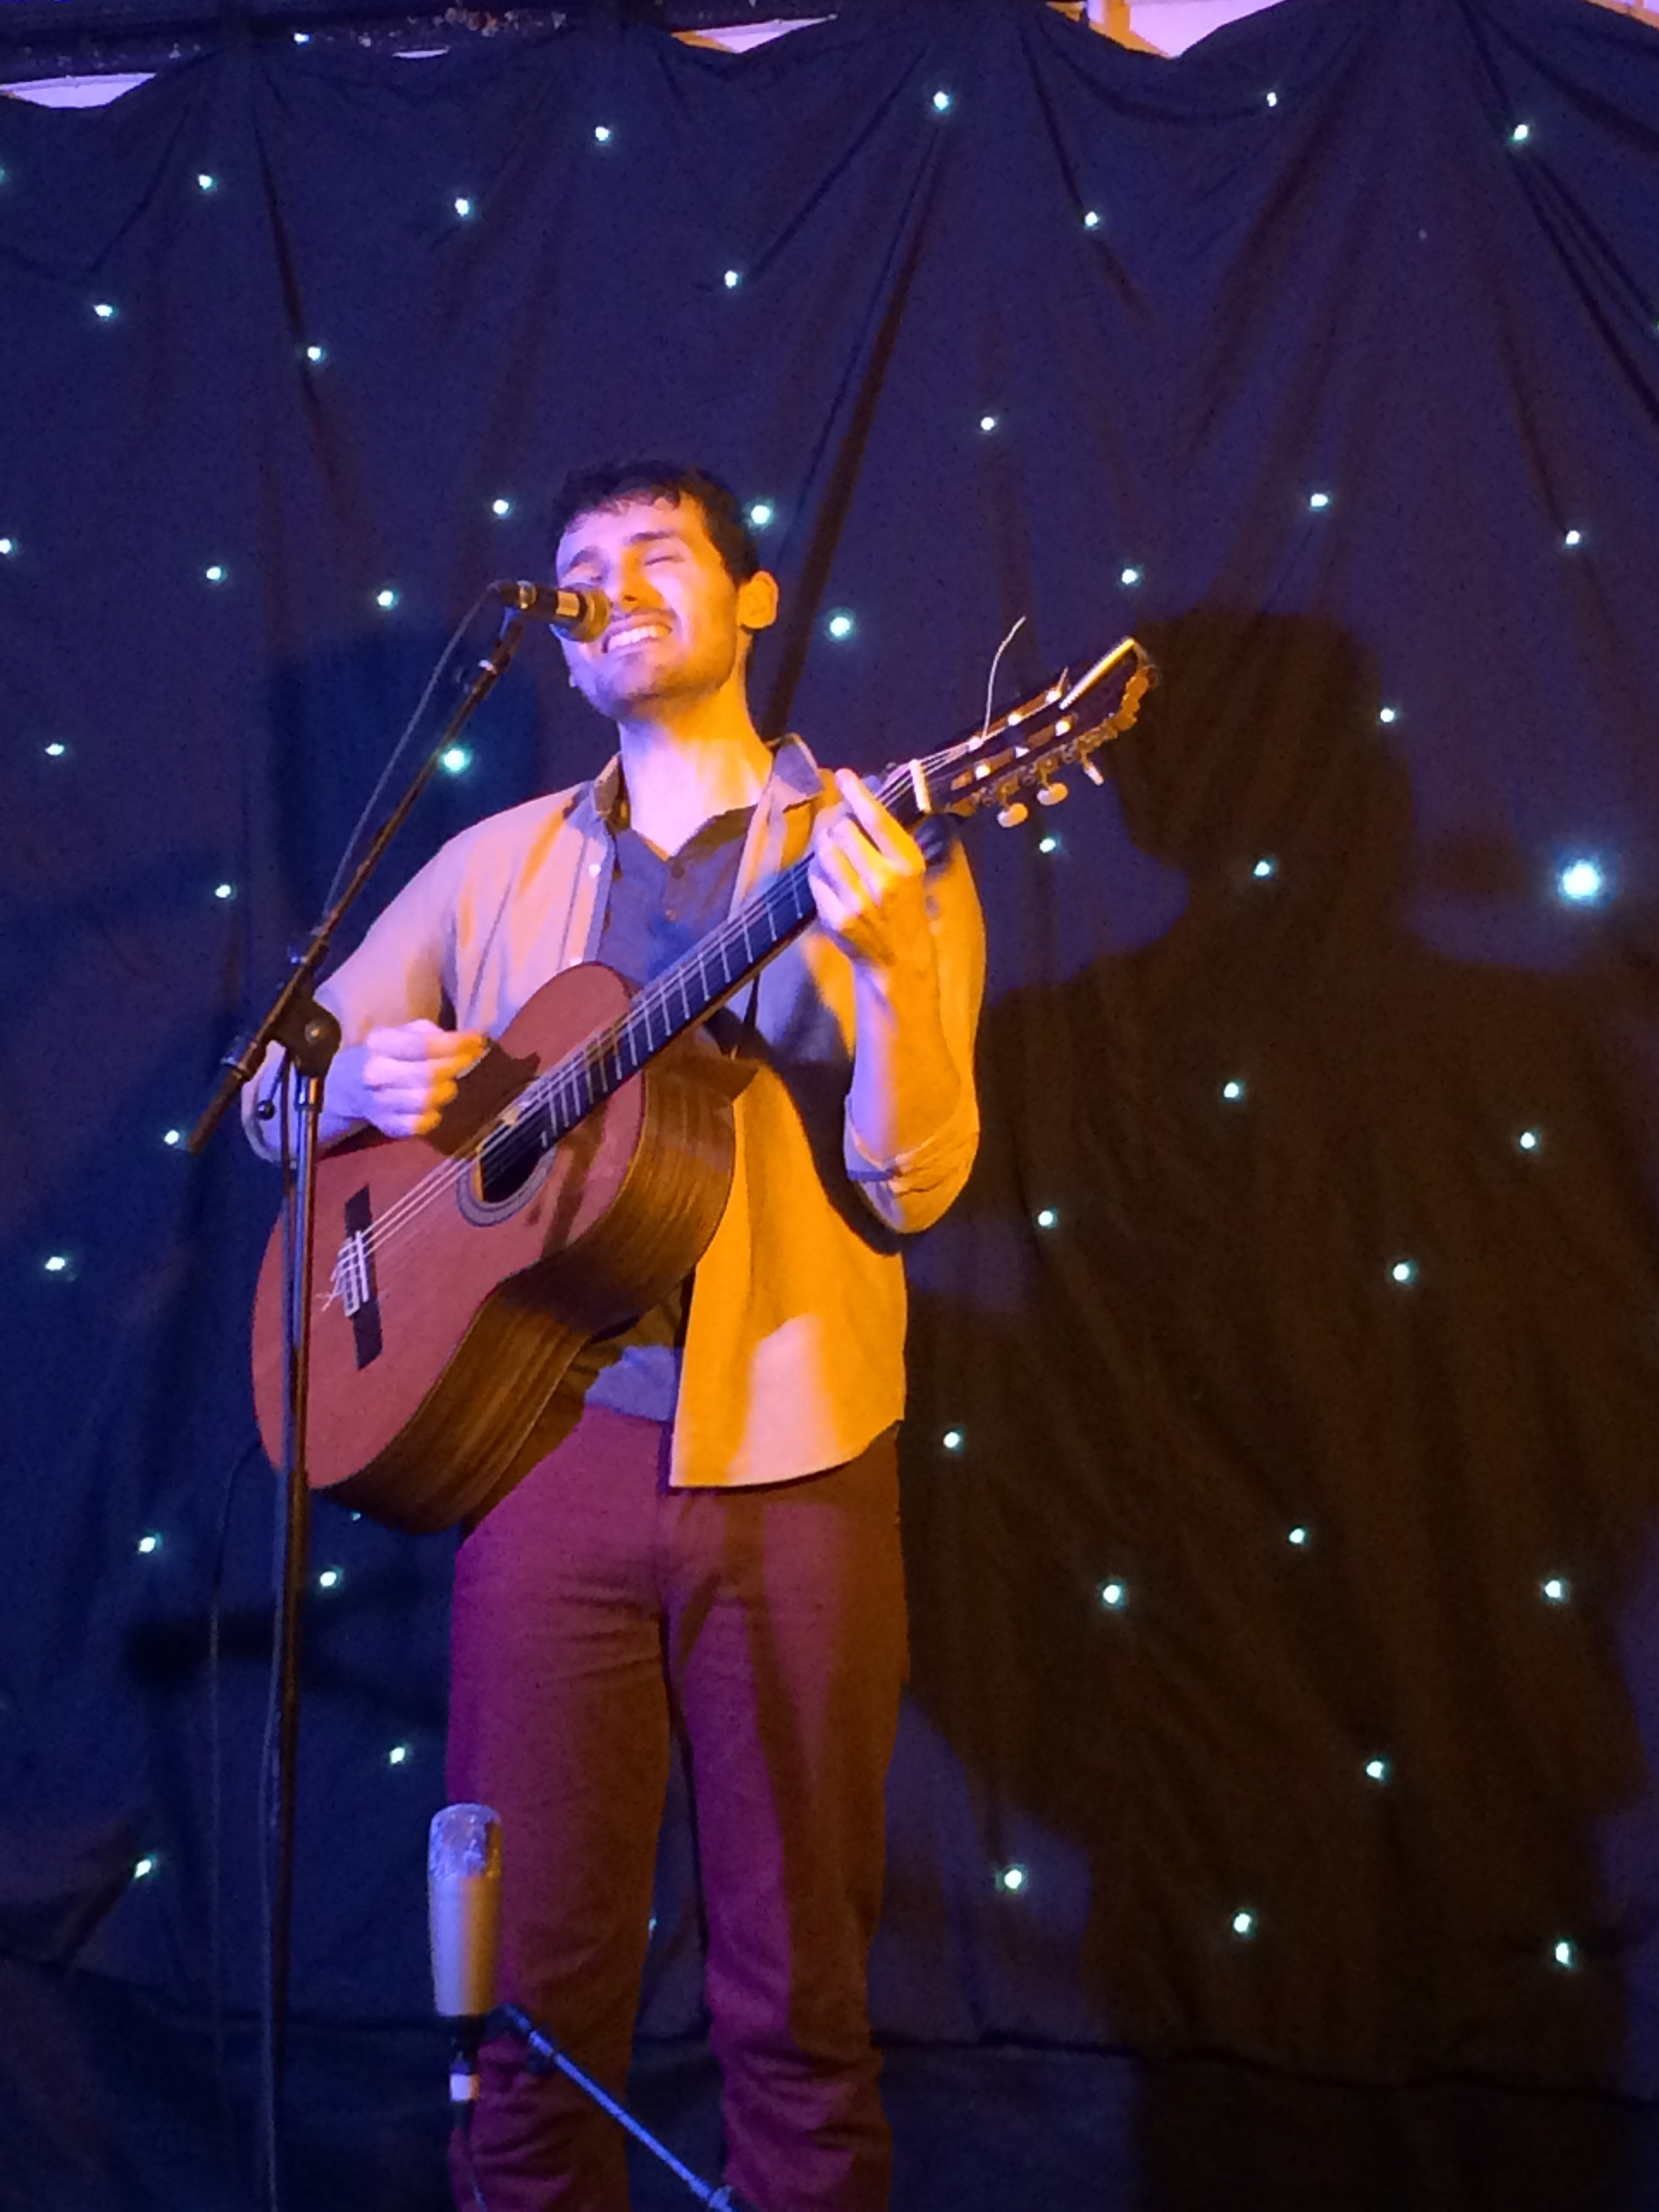 Dom Prag at Forest Folk Club